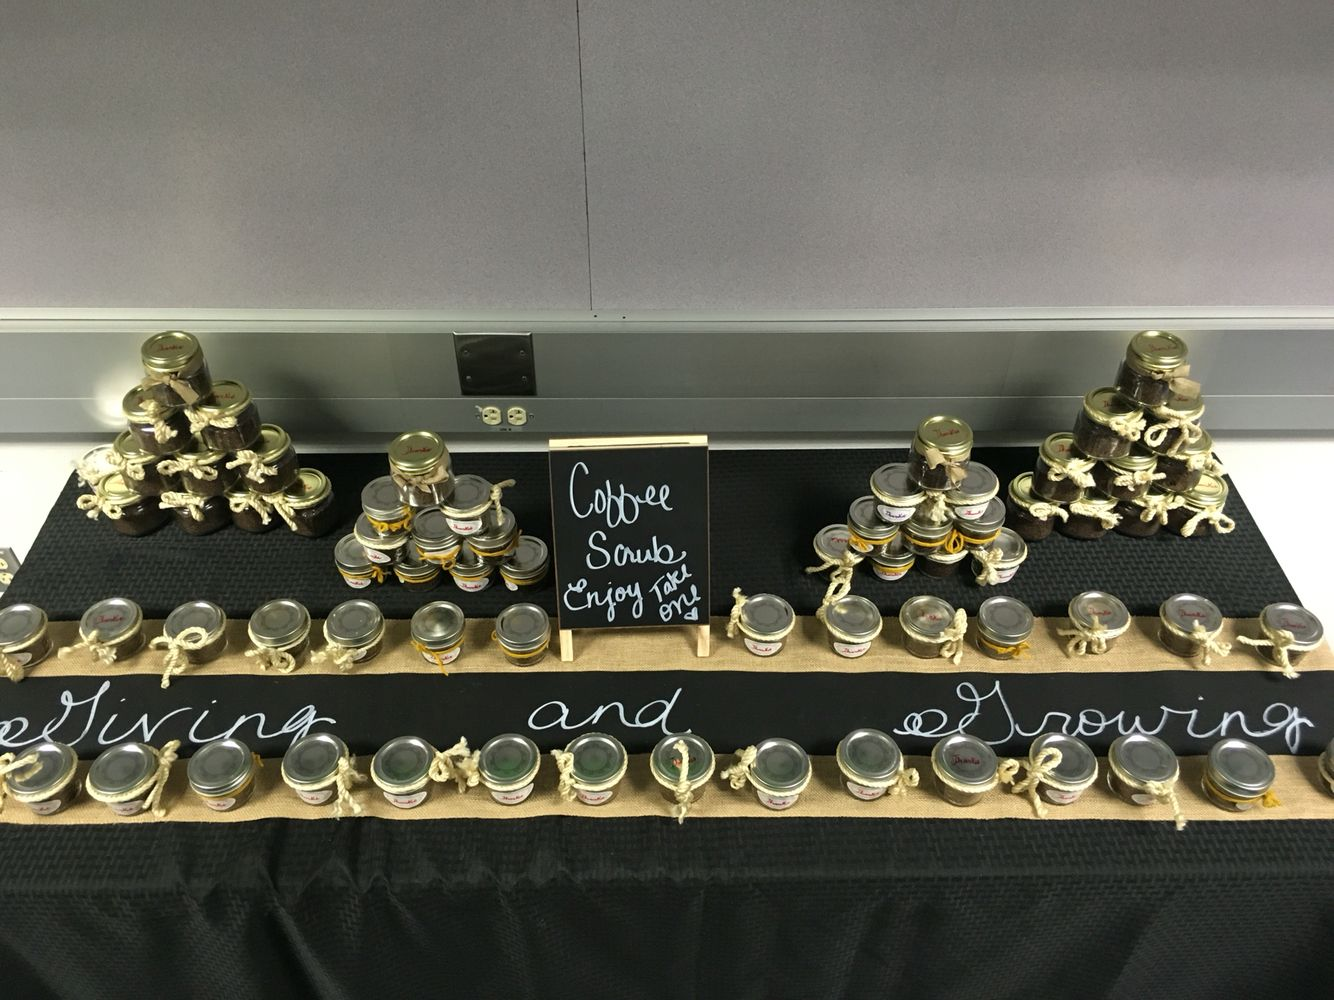 """Stubbornly Sweet Coffee and Cinnamon Scrub. These jars of """"dirt"""" were created as gifts for parents who were celebrated at a """"Giving Tree"""" themed Volunteer Appreciation lunch."""